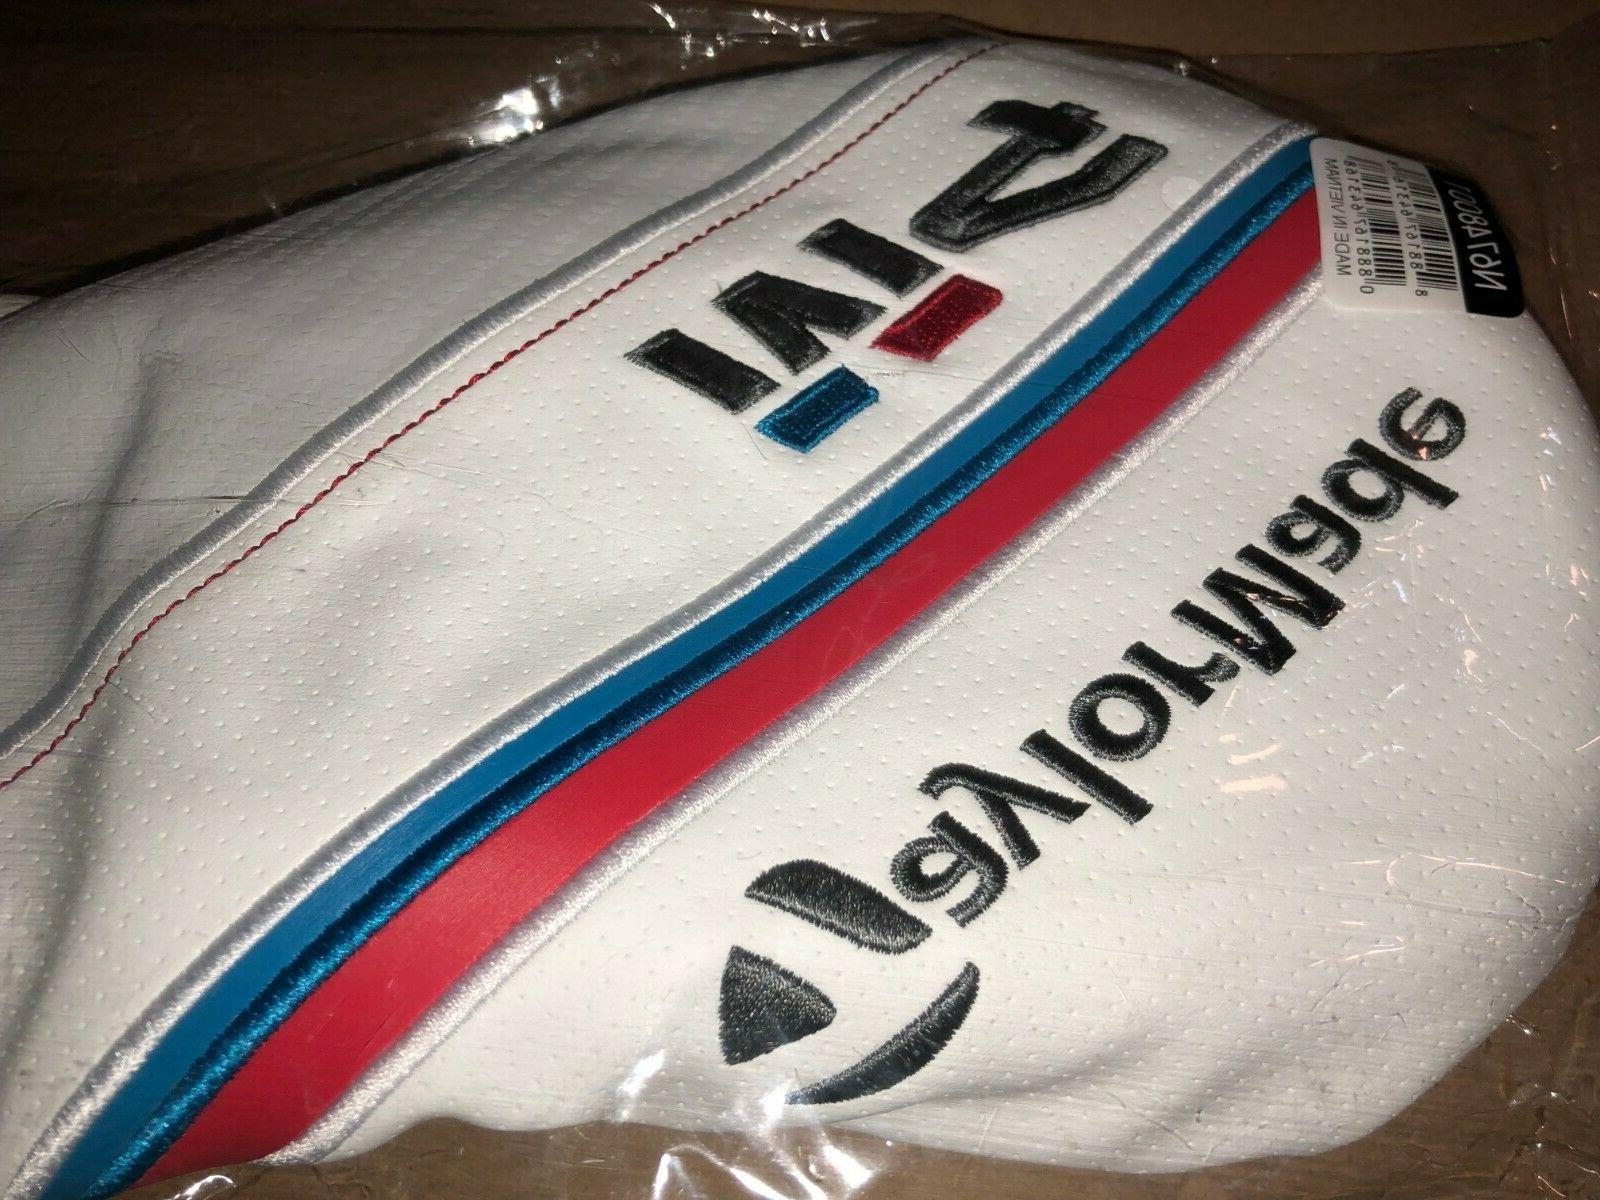 TaylorMade M4 White/Red/Blue Headcover